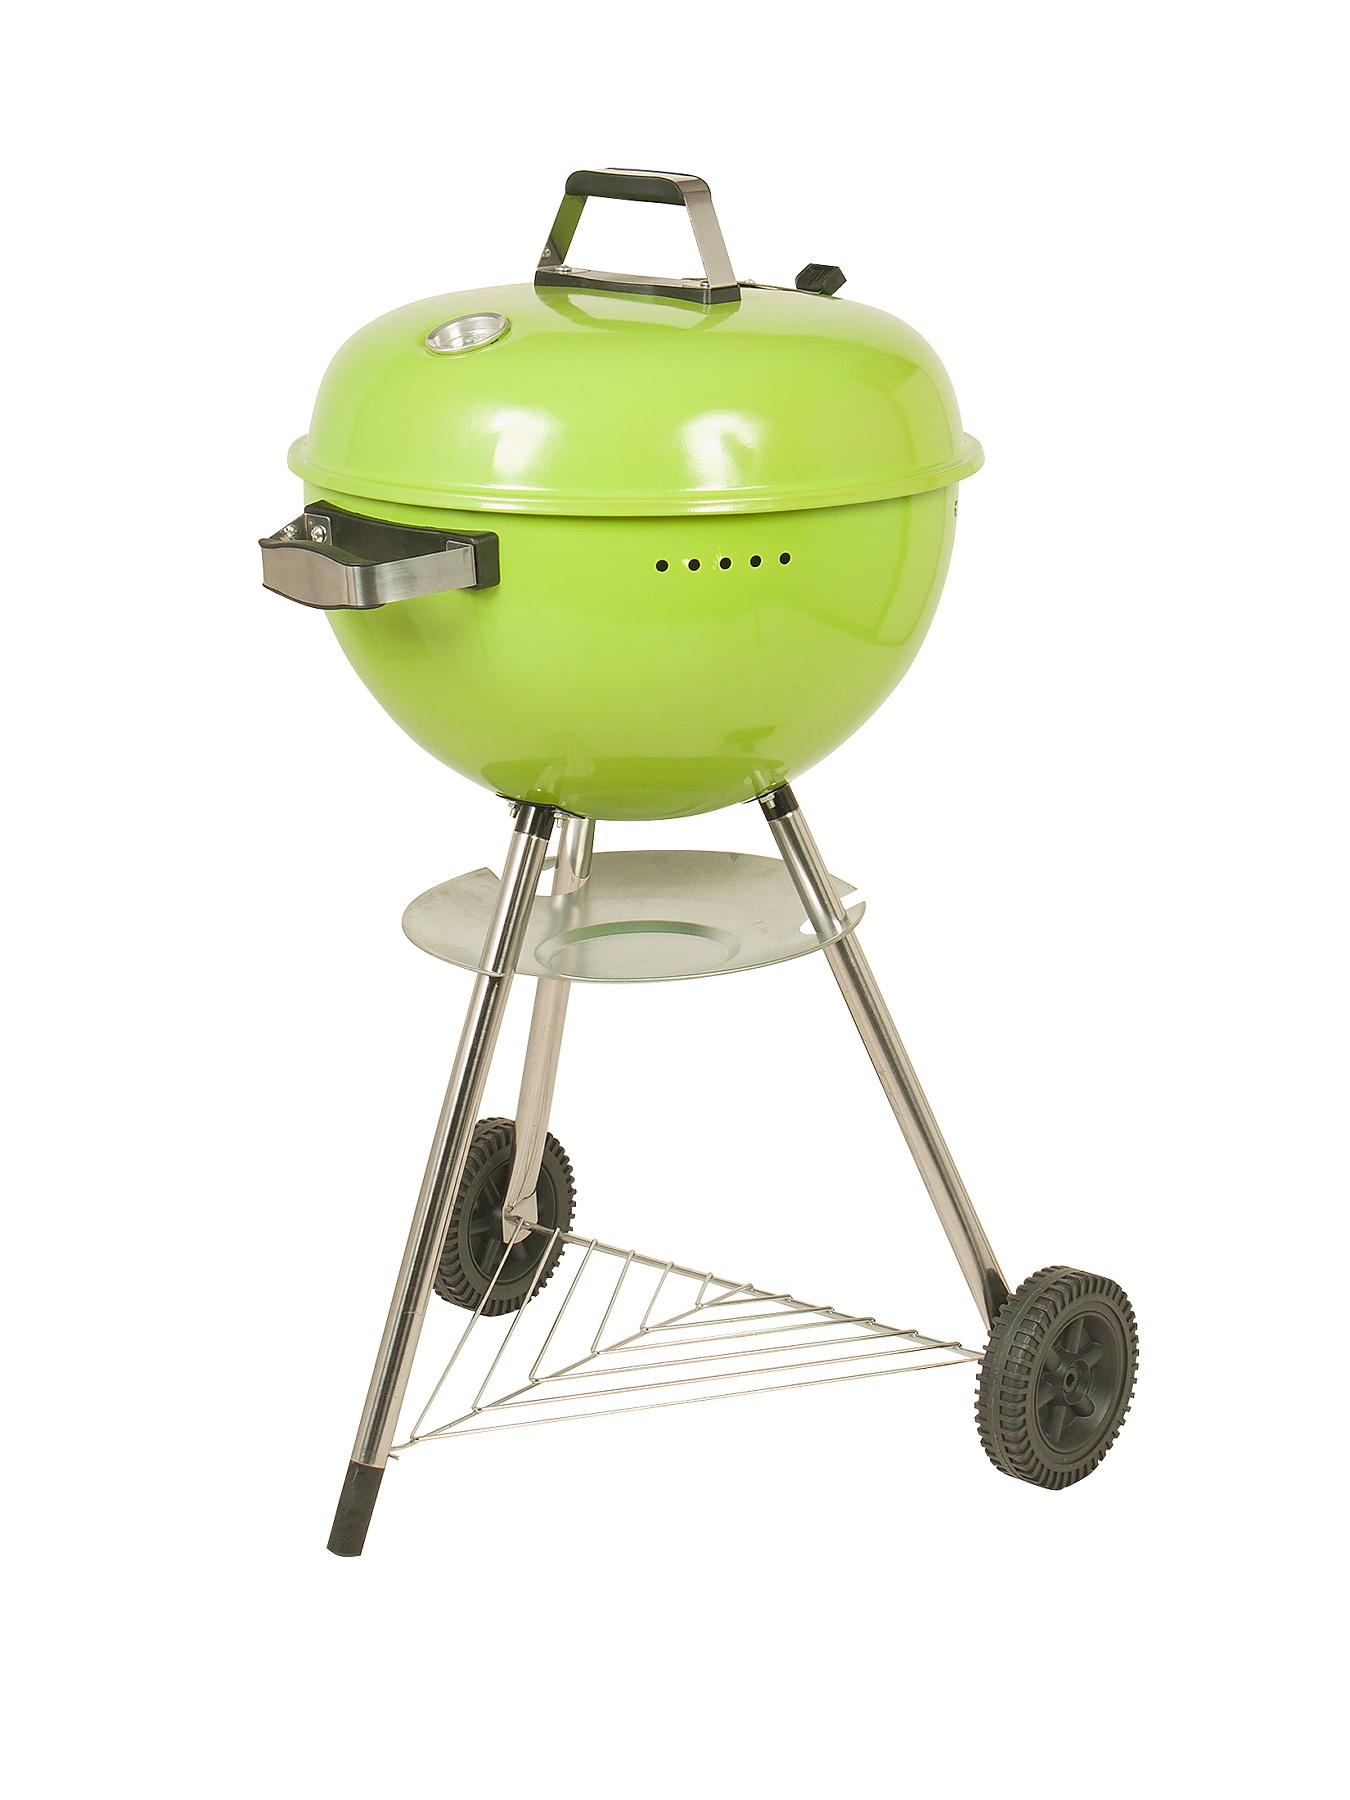 Deluxe Charcoal Kettle BBQ - Green, Green at Littlewoods